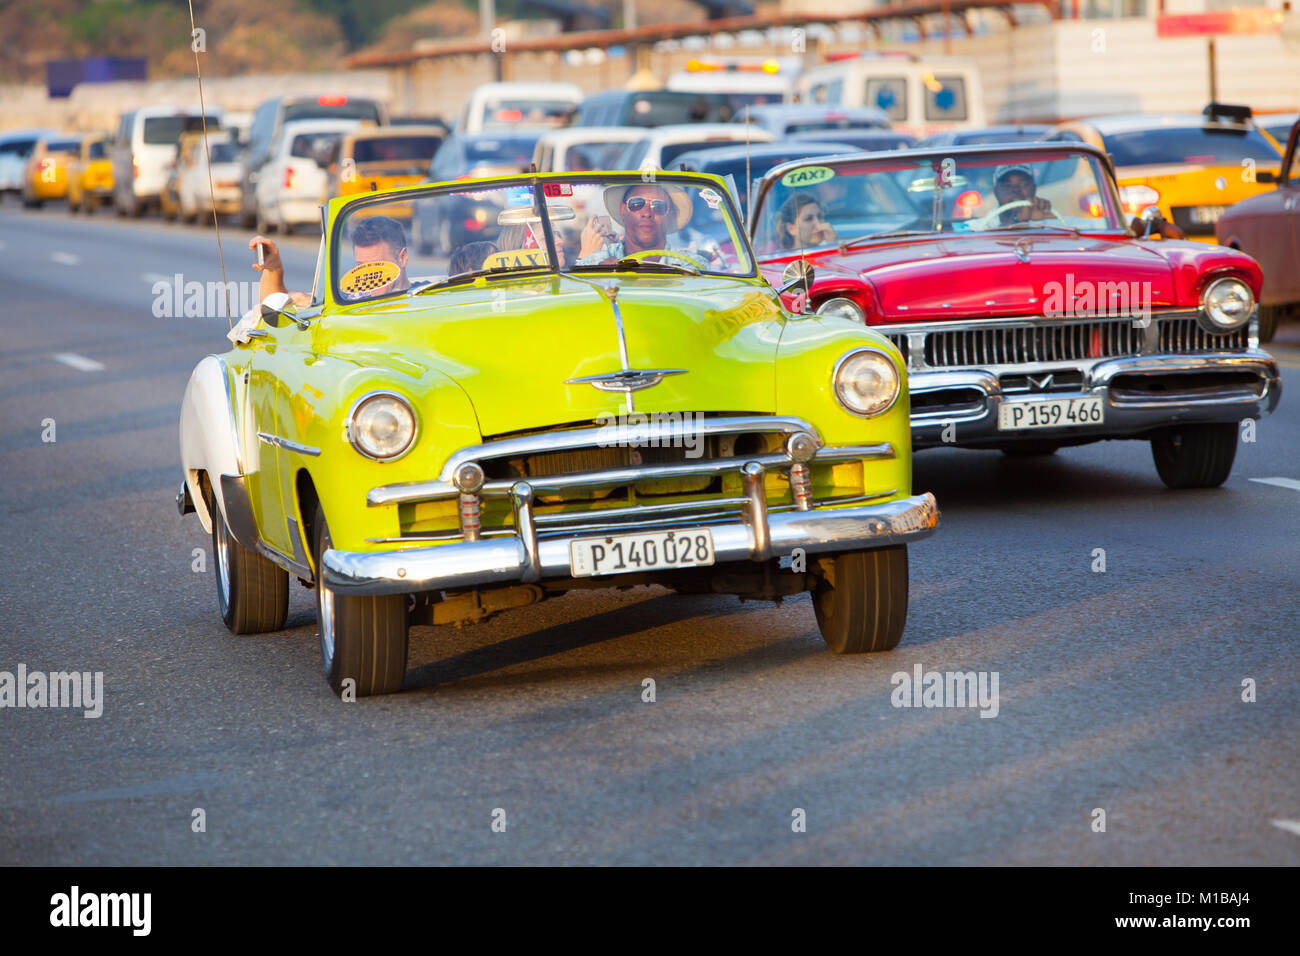 Vintage Convertibles on the Malecon - Stock Image